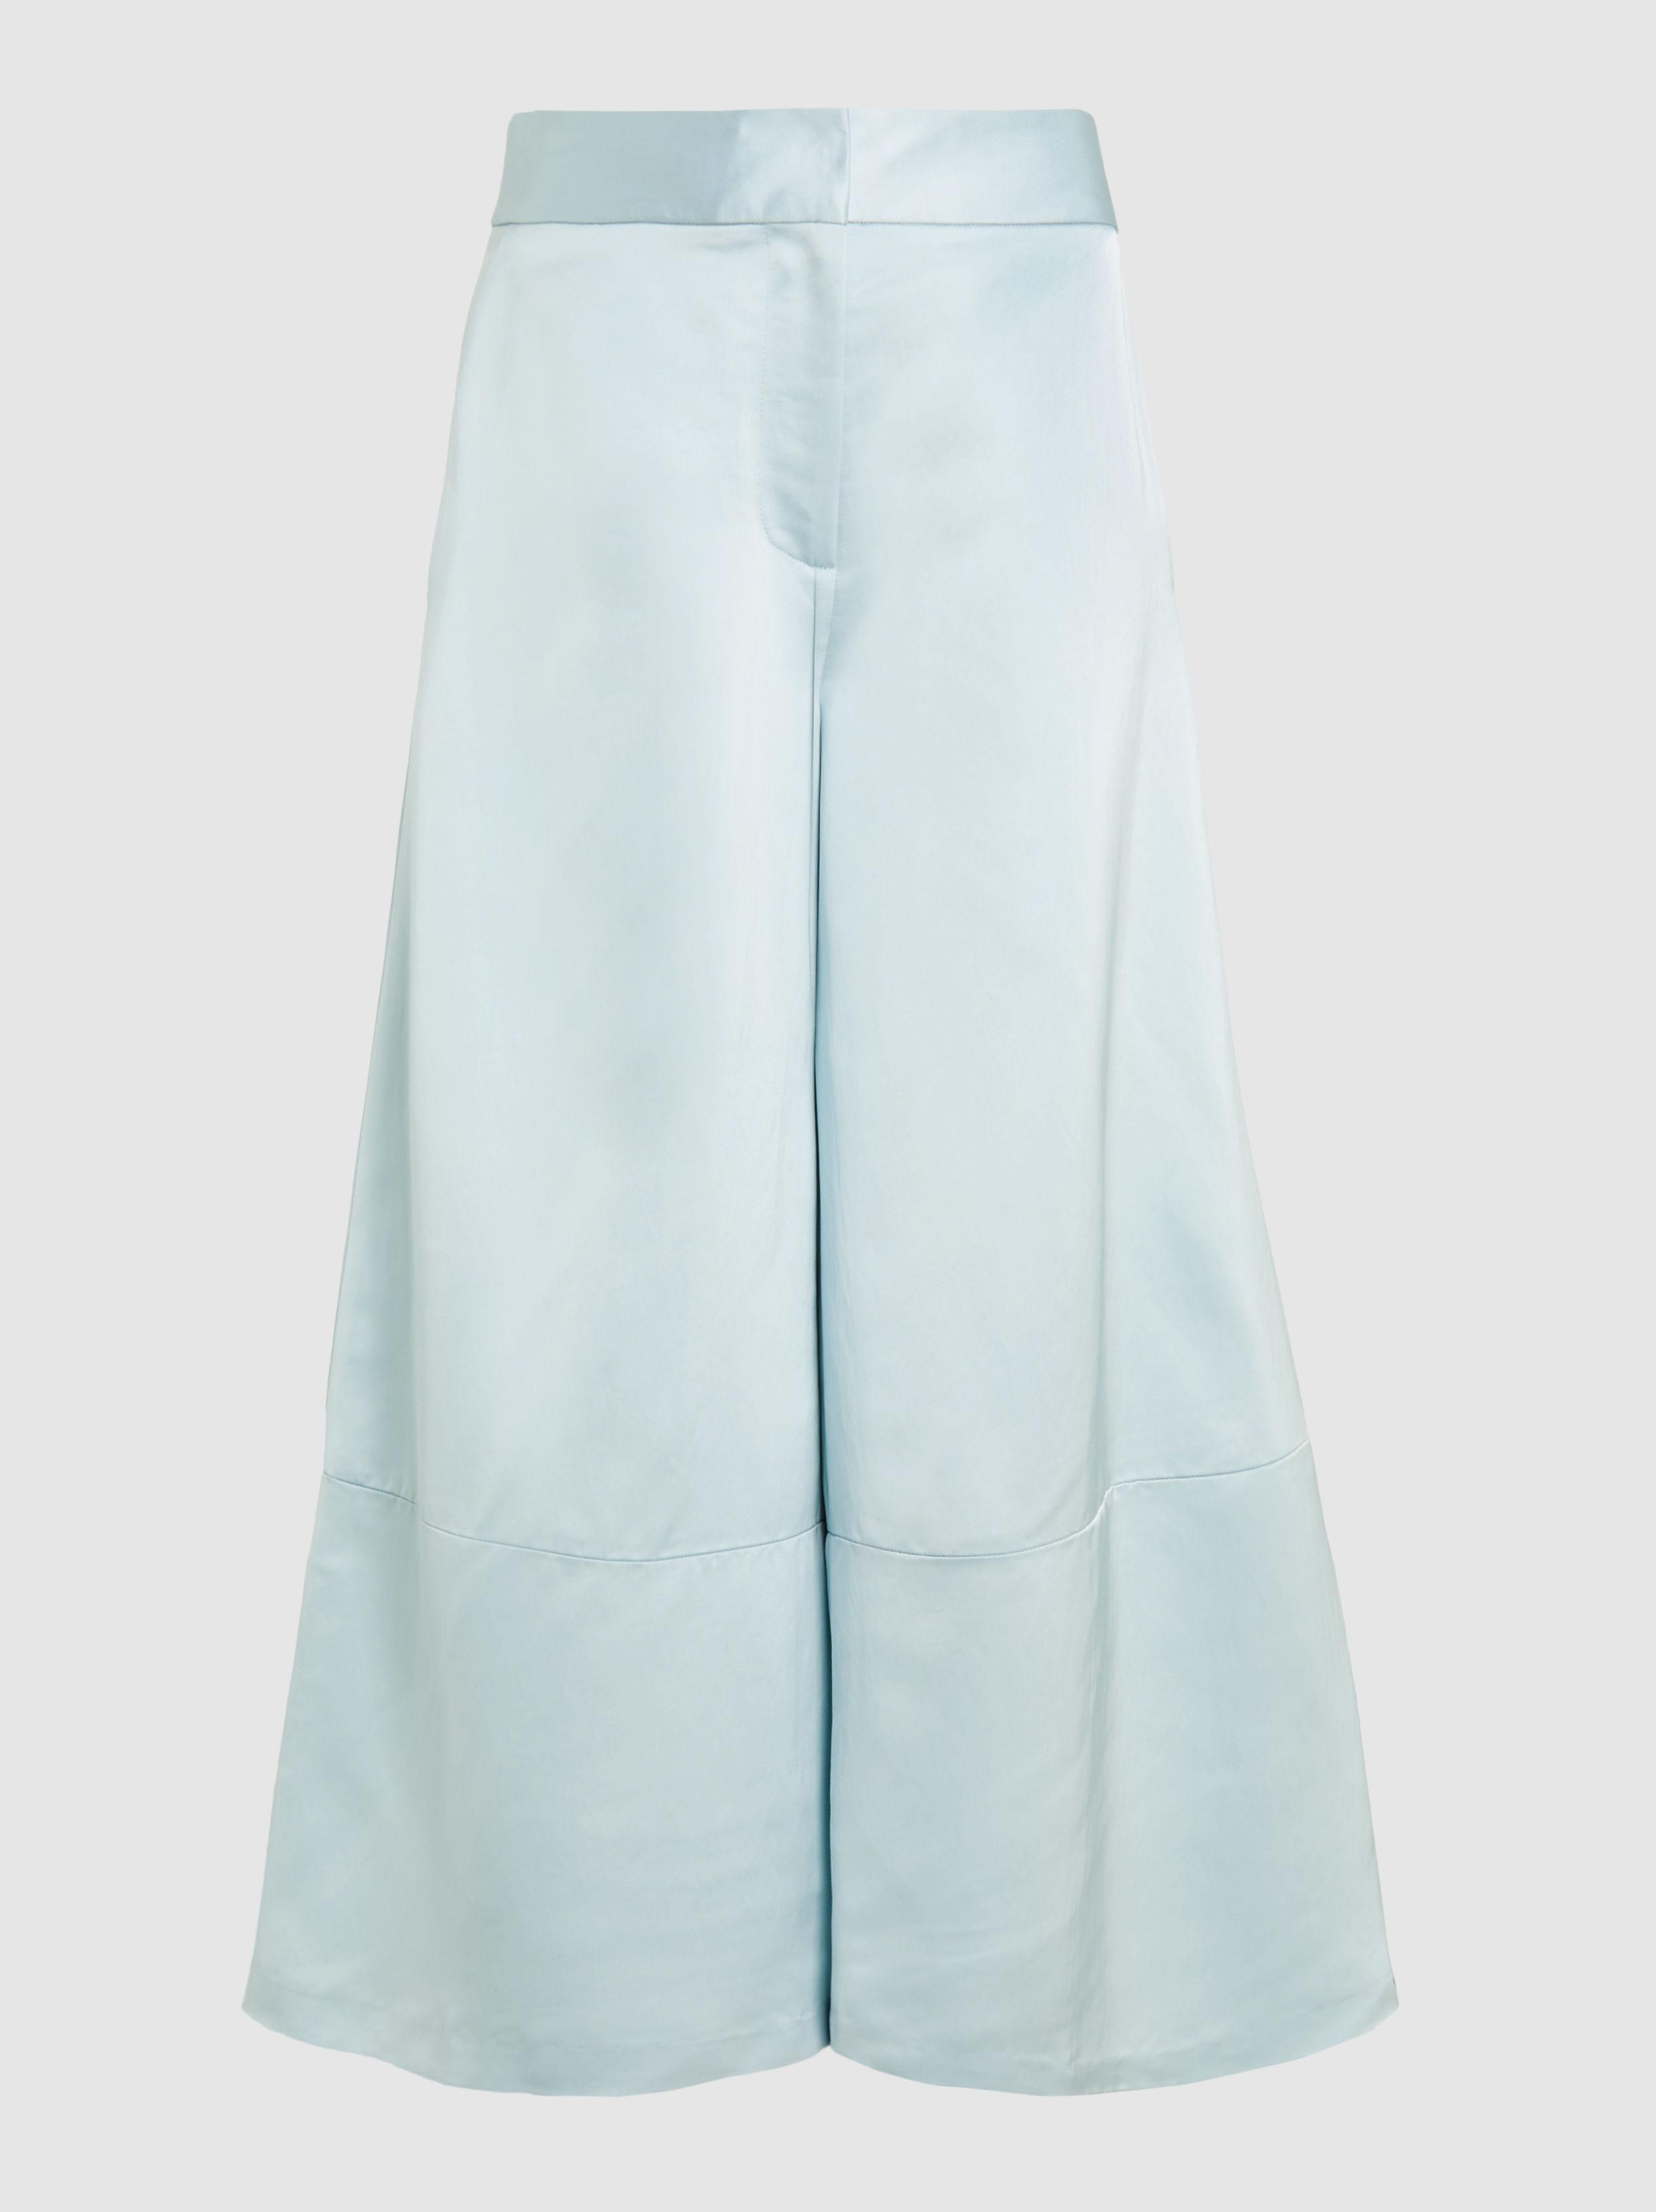 Silk-Blend Wide-Leg Culottes Marina Moscone Where To Buy Cheap Real Discount Perfect Shipping Discount Sale 8QkzNRMK1